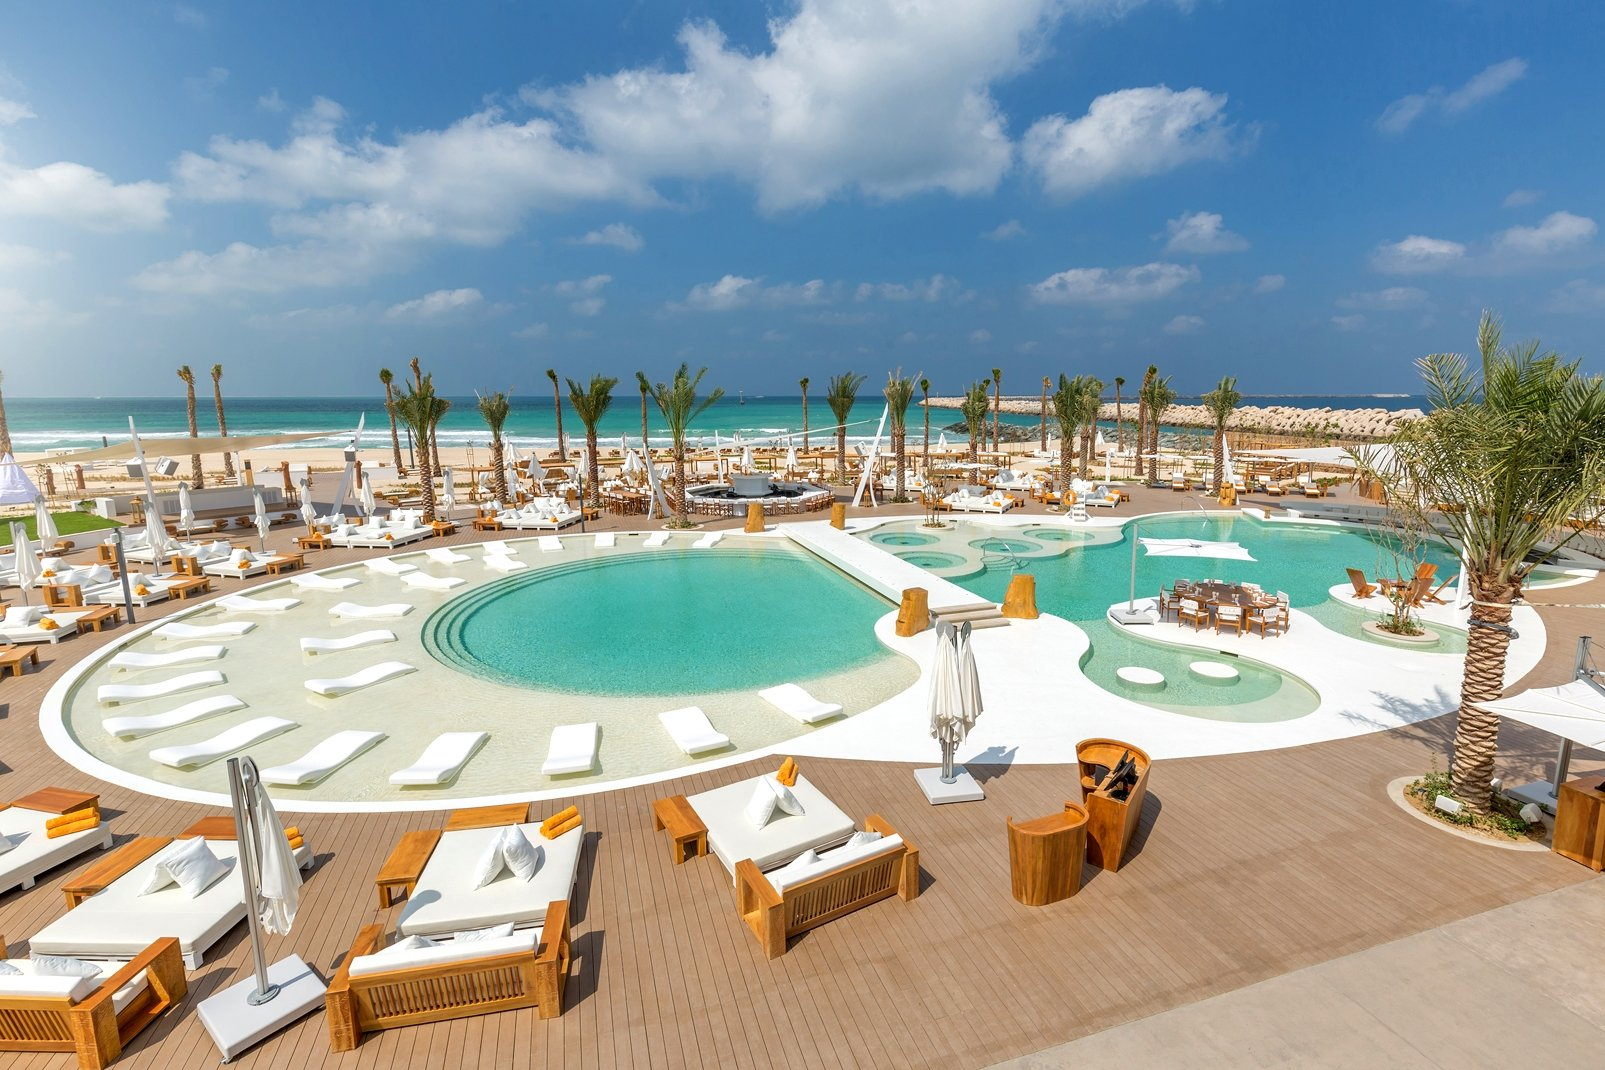 Hôtel Nikki Beach Resort & Spa Dubaï 5* - 1